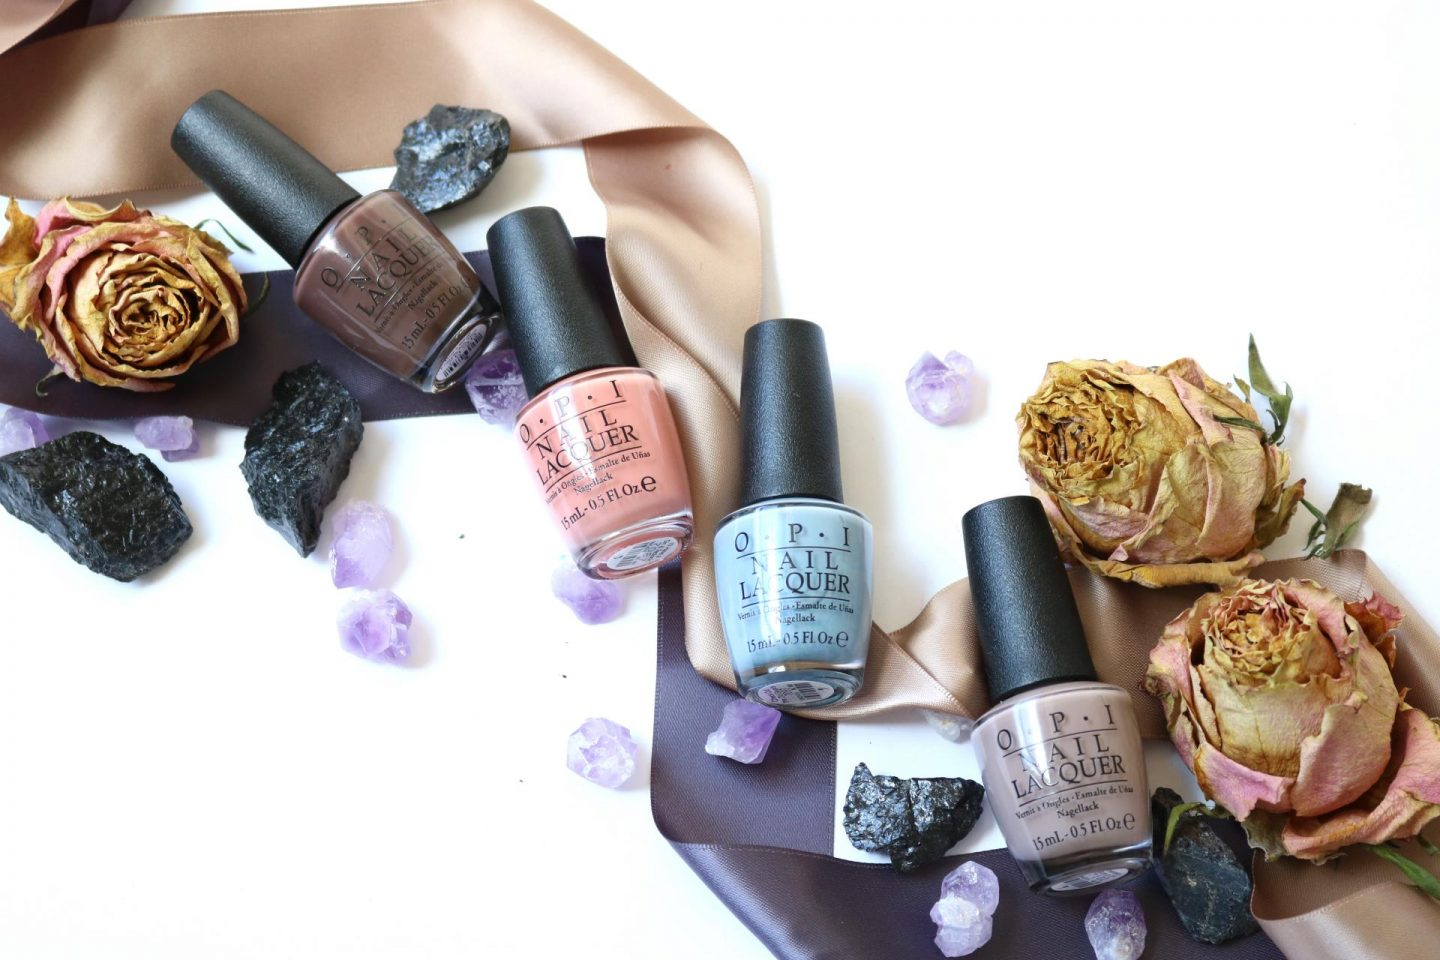 Getting winter ready with the OPI Iceland Collection